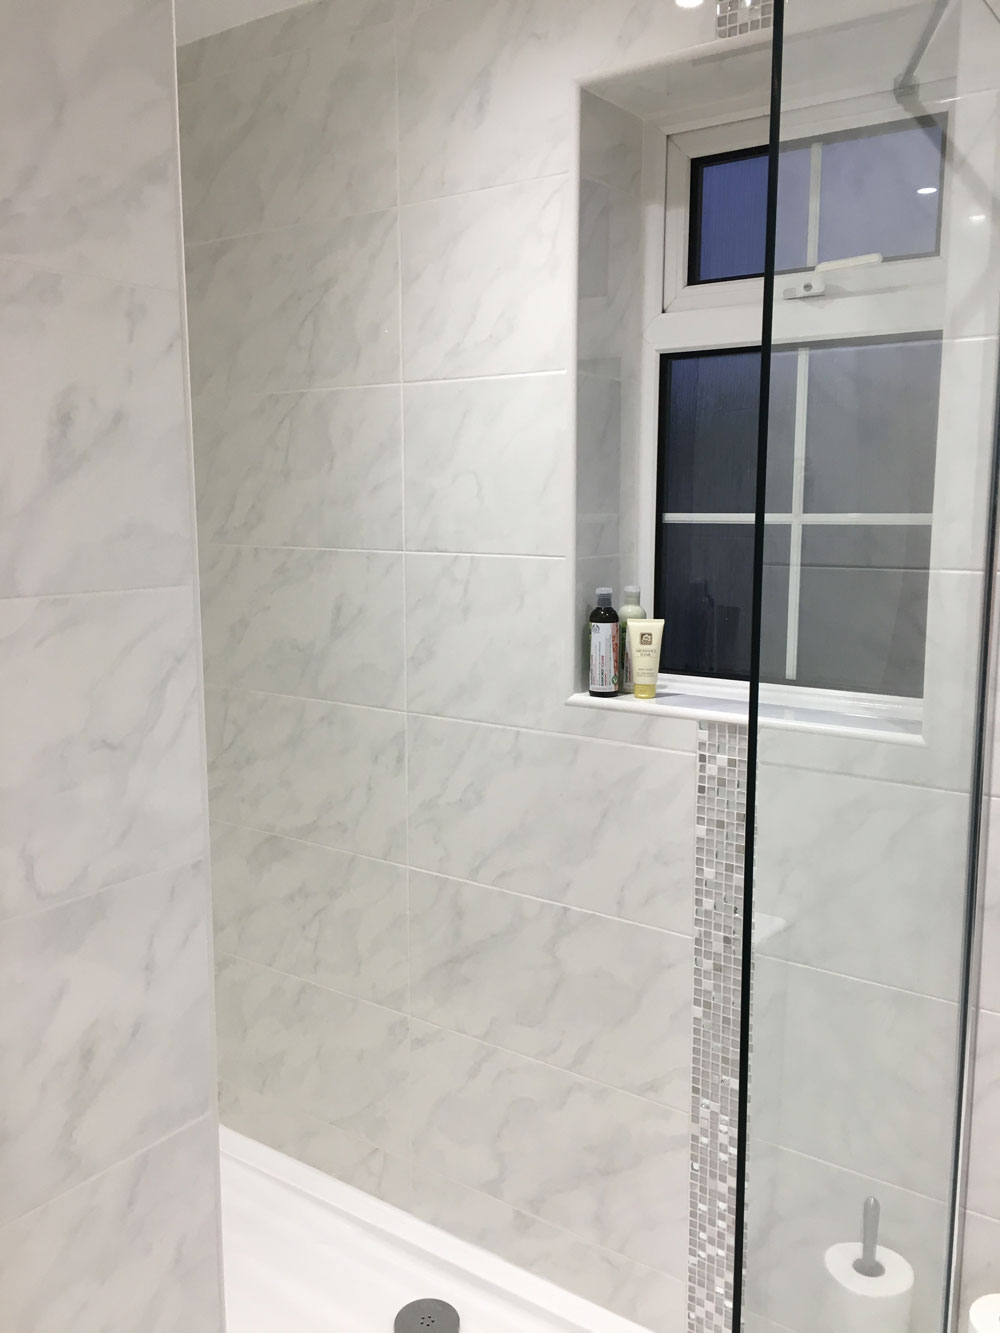 Bathrooms birmingham uk - New Vanity Units Were Installed Along With New Plumbing Tiling And A New Floor We Also Carried Out The Plastering And Tiling So There Was No Need To